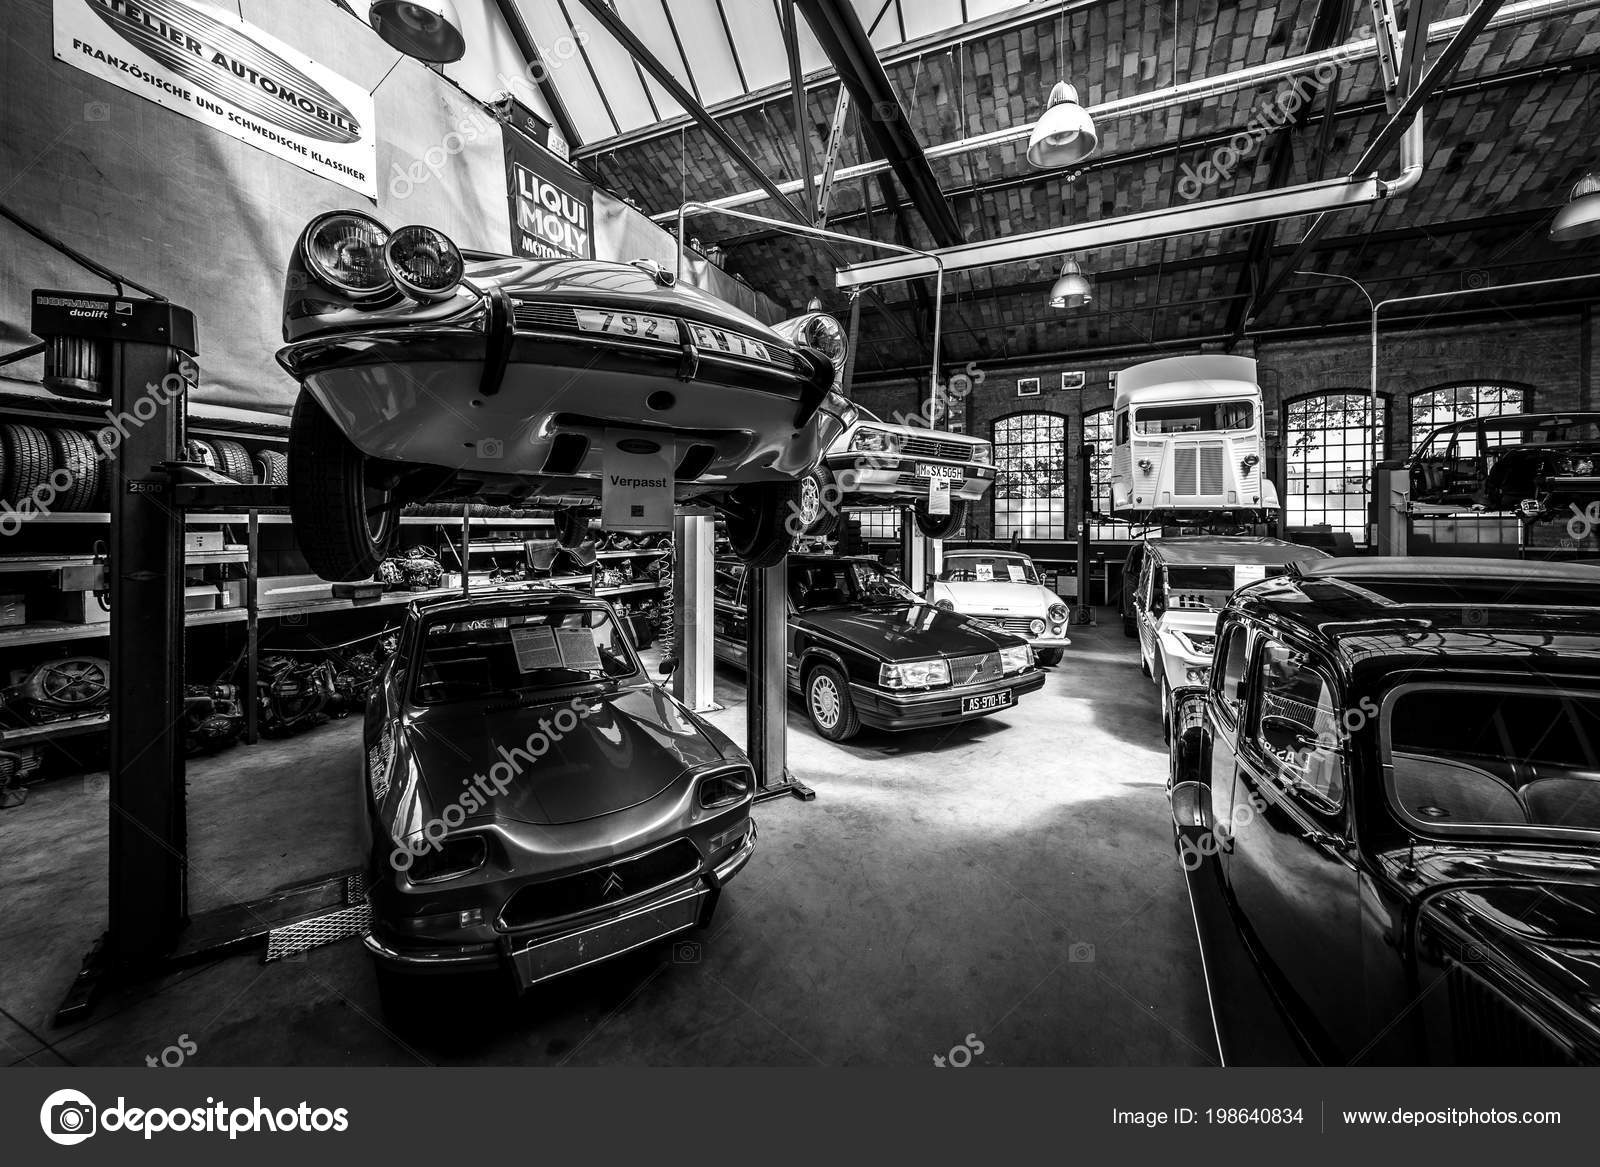 Berlin may 06 2018 a workshop for the maintenance and repair of retro cars in the complex of buildings classic remise berlin black and white